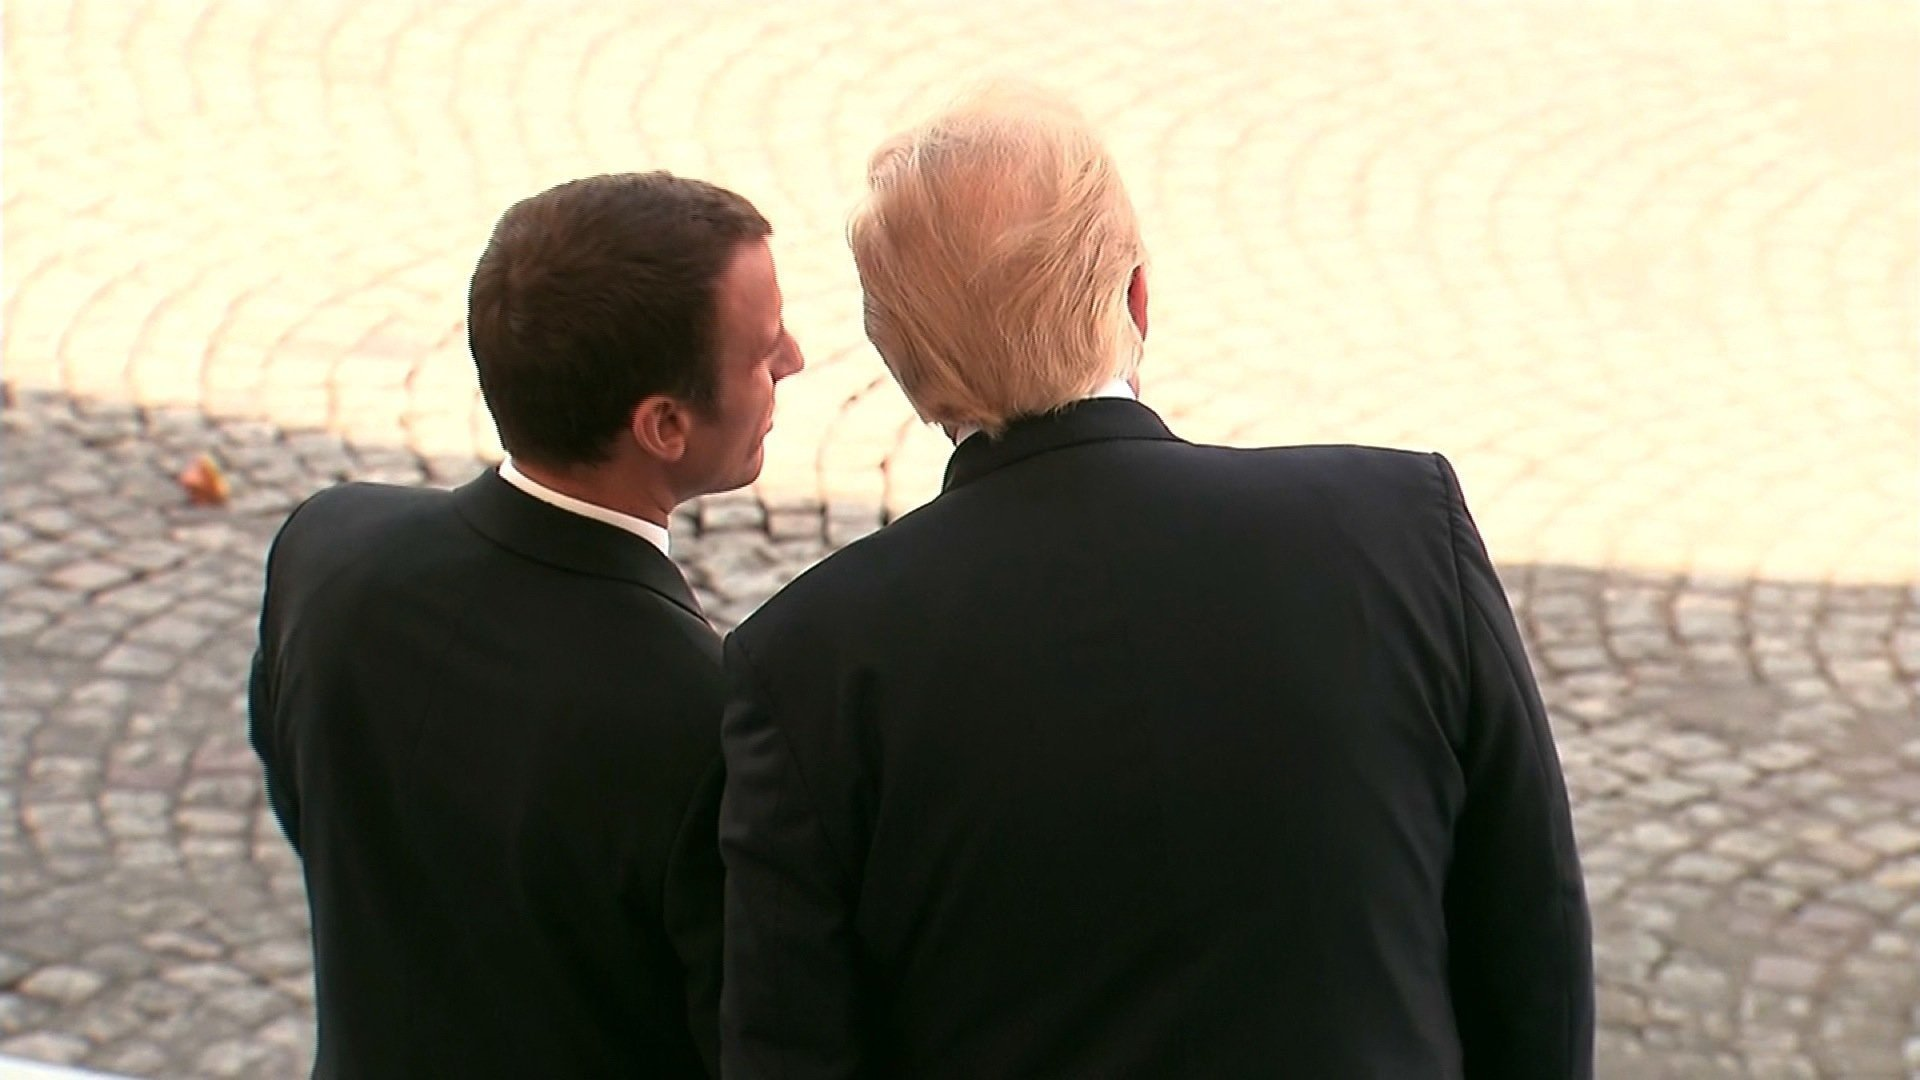 Trump caught on tape talking about the body of French president's wife